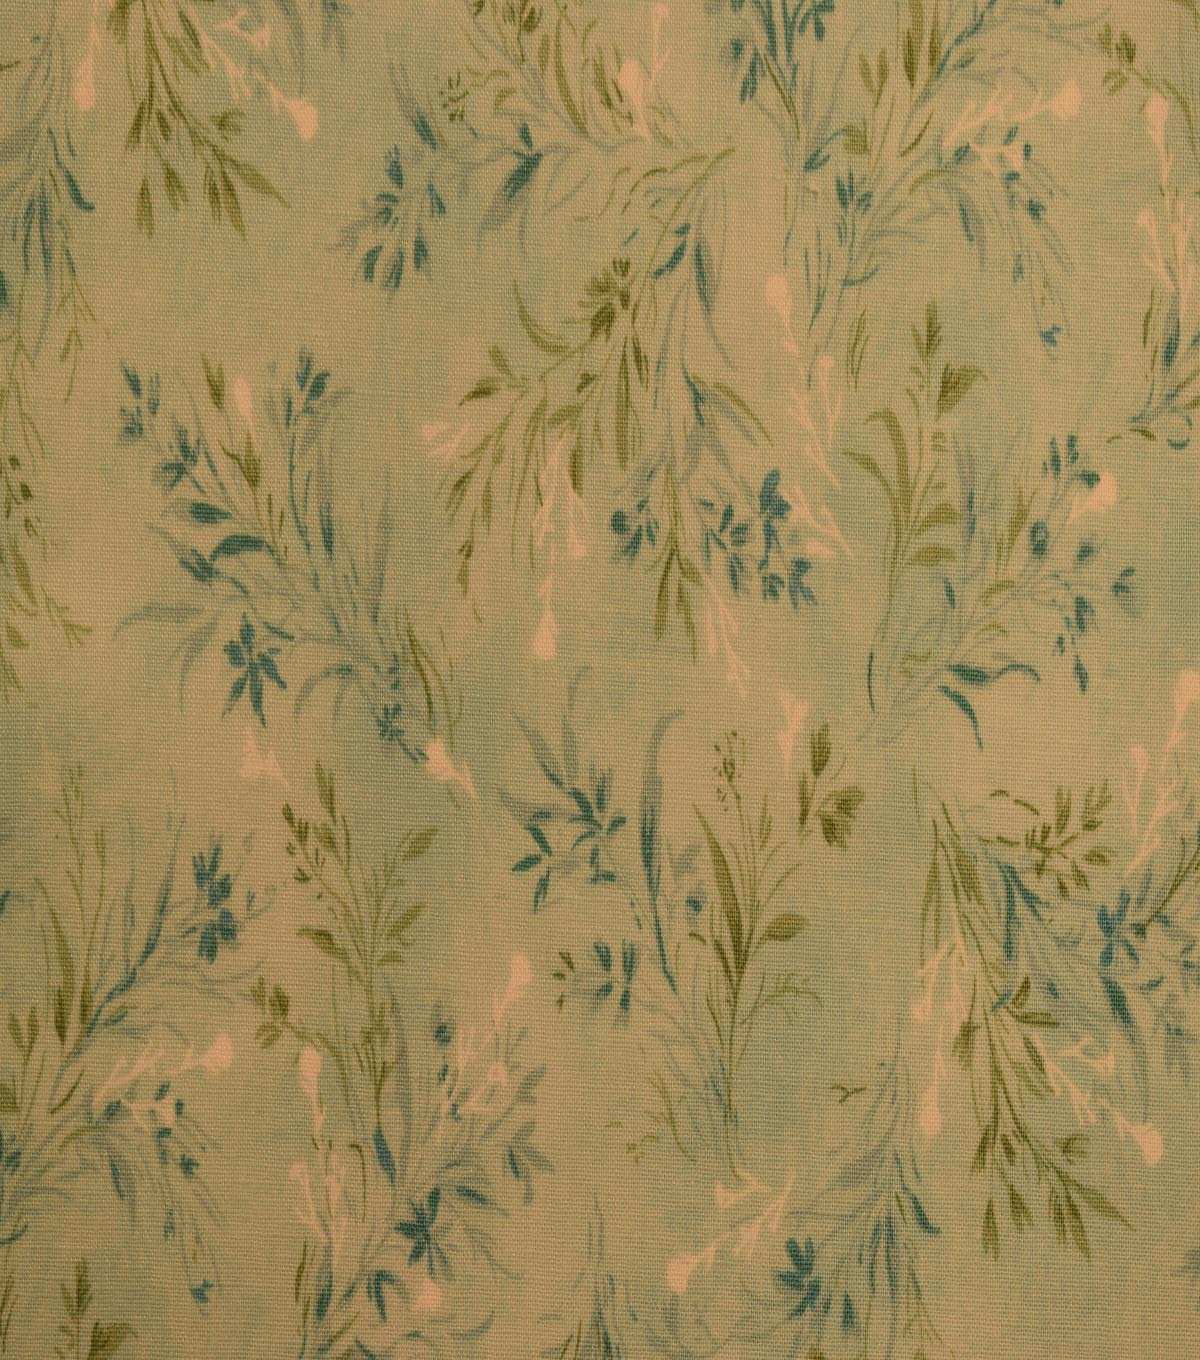 Vintage Premium Cotton Fabric -Teal Whispy Vines